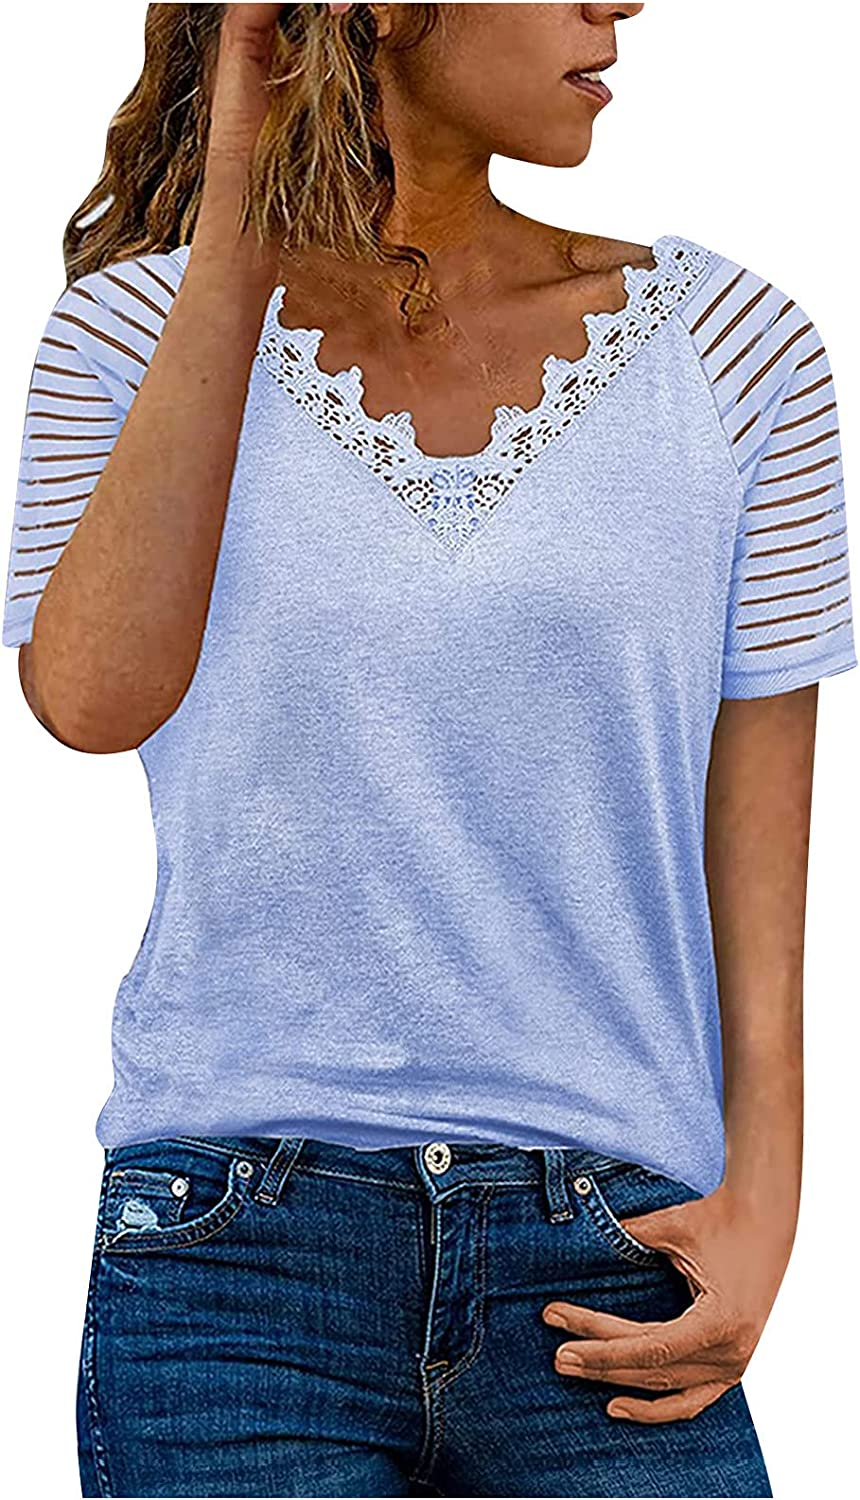 Shirts for Women, Womens Summer Casual Lace V Neck Cut Out Short Sleeve Solid Color Loose Blouse Tops T-Shirt